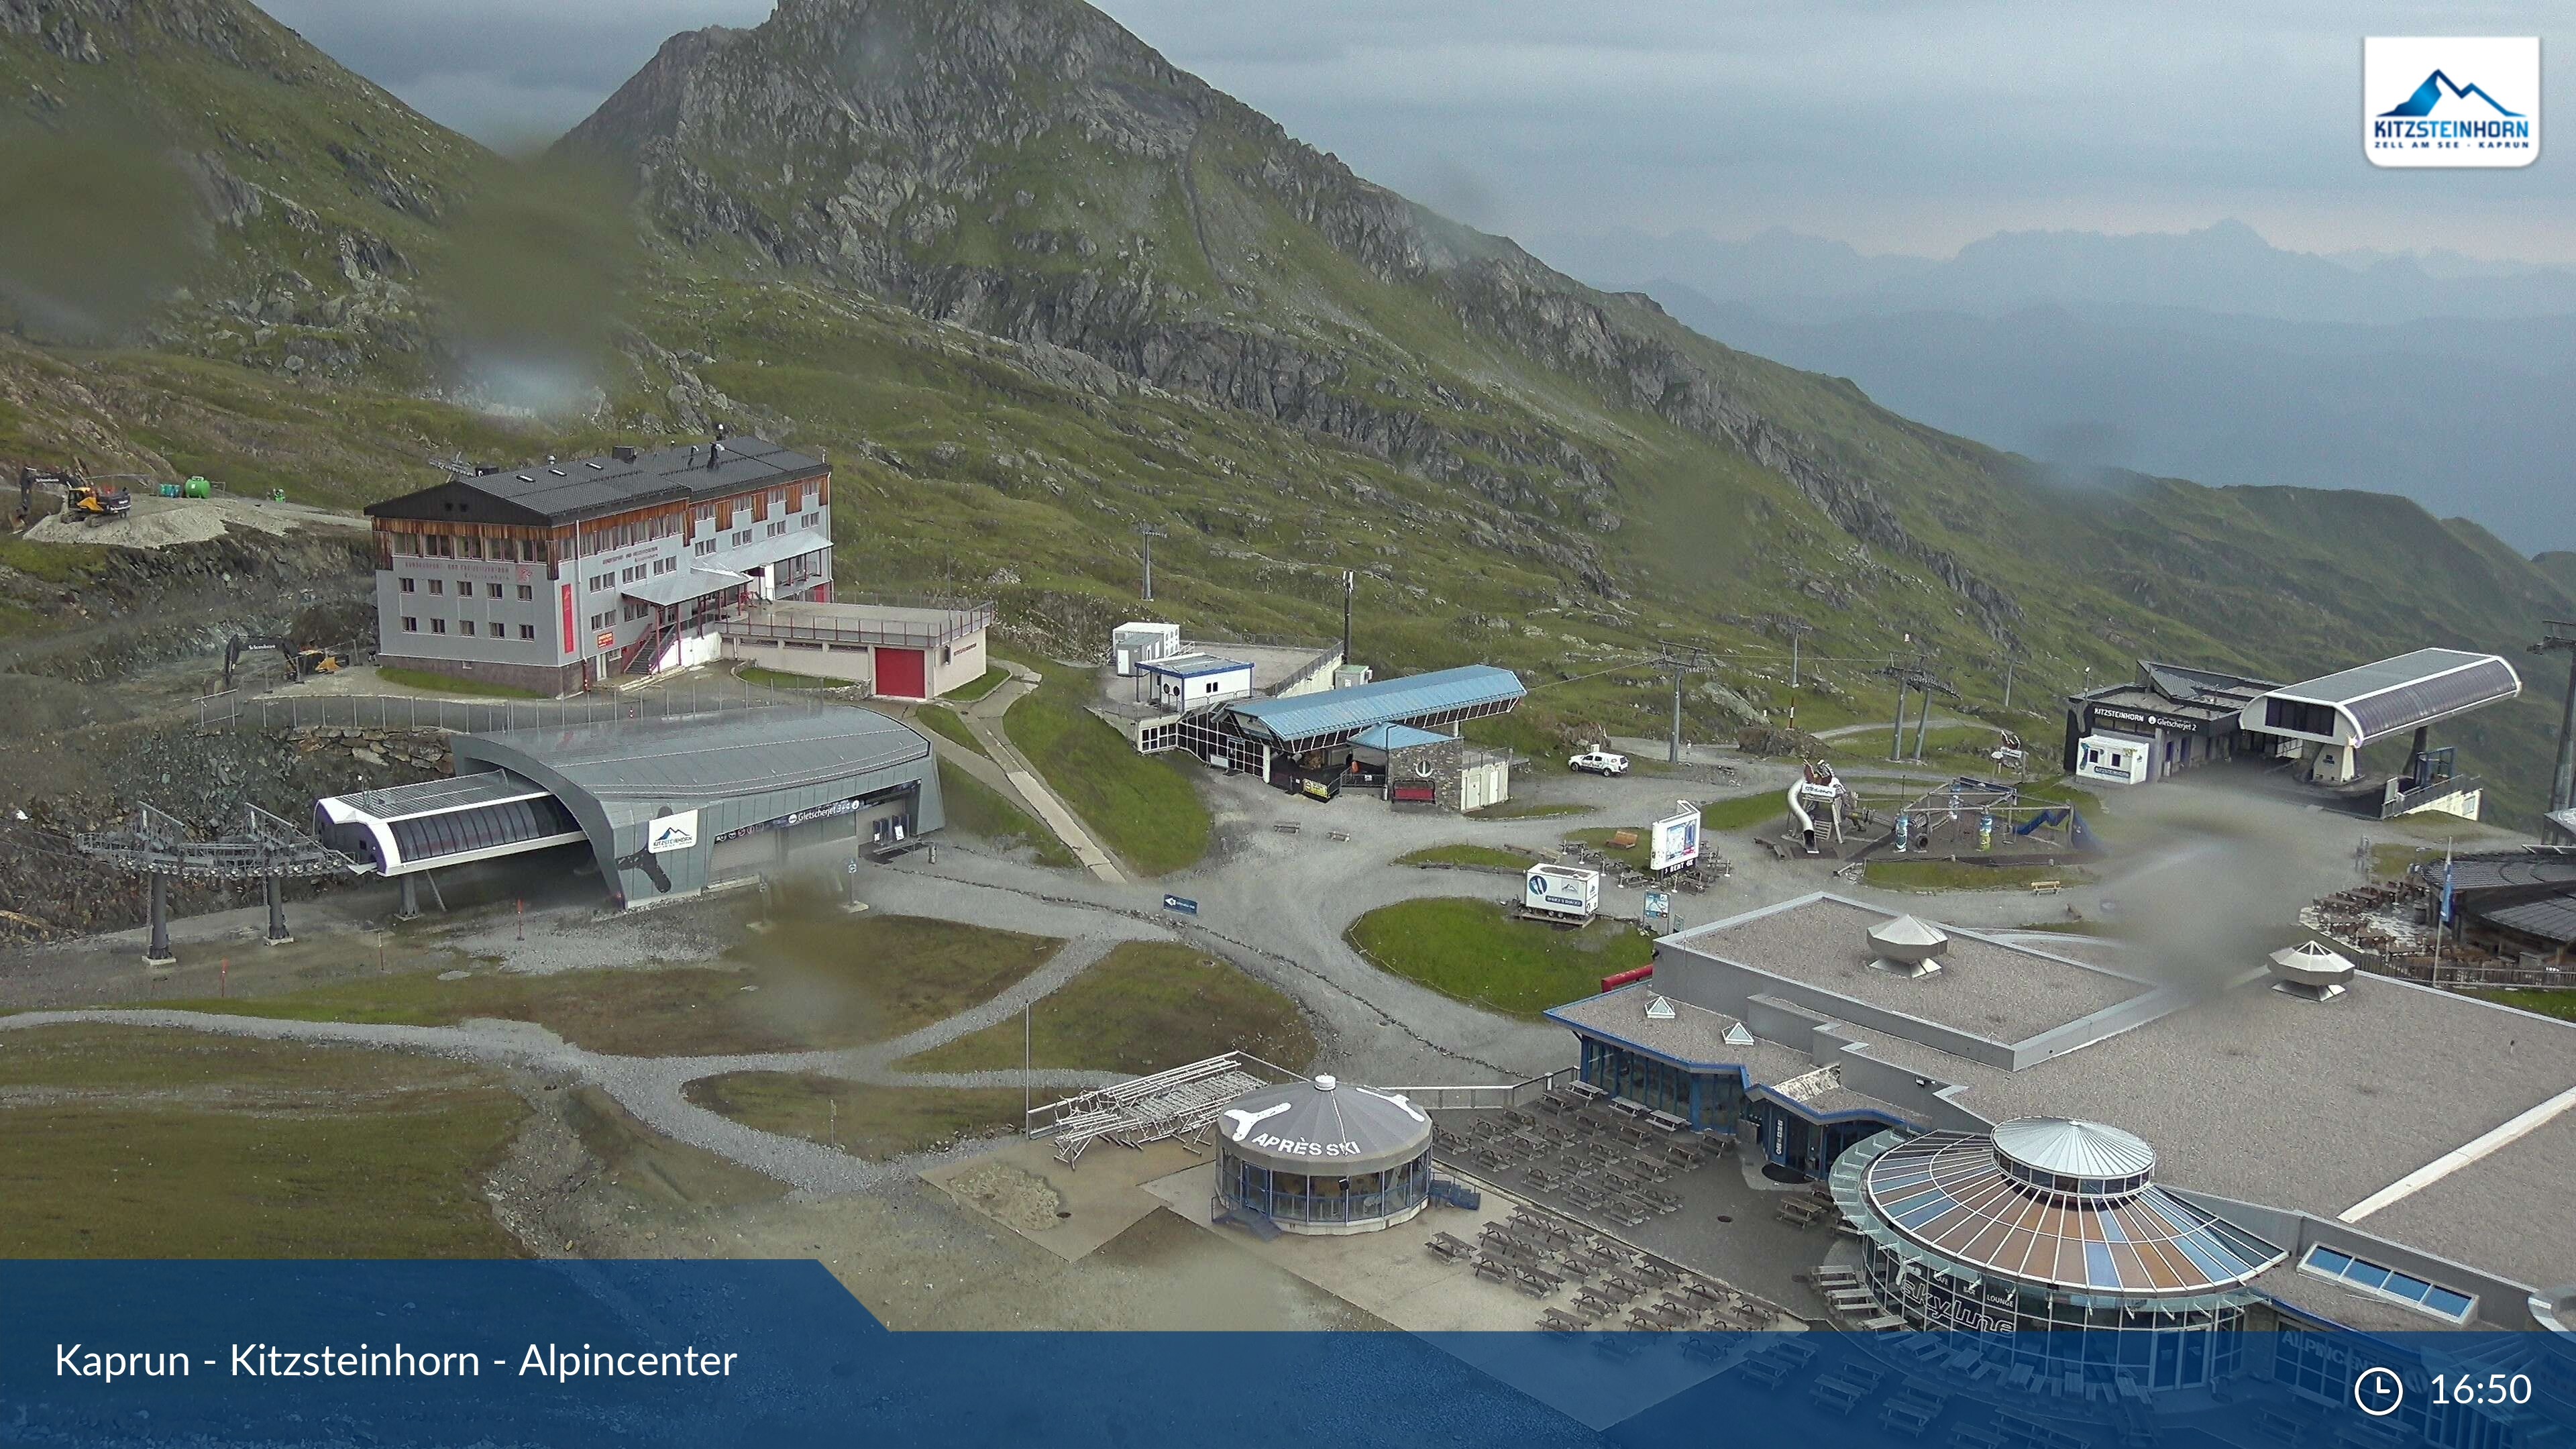 Kaprun-Kitzsteinhorn webcam - Alpin center 2.500 m